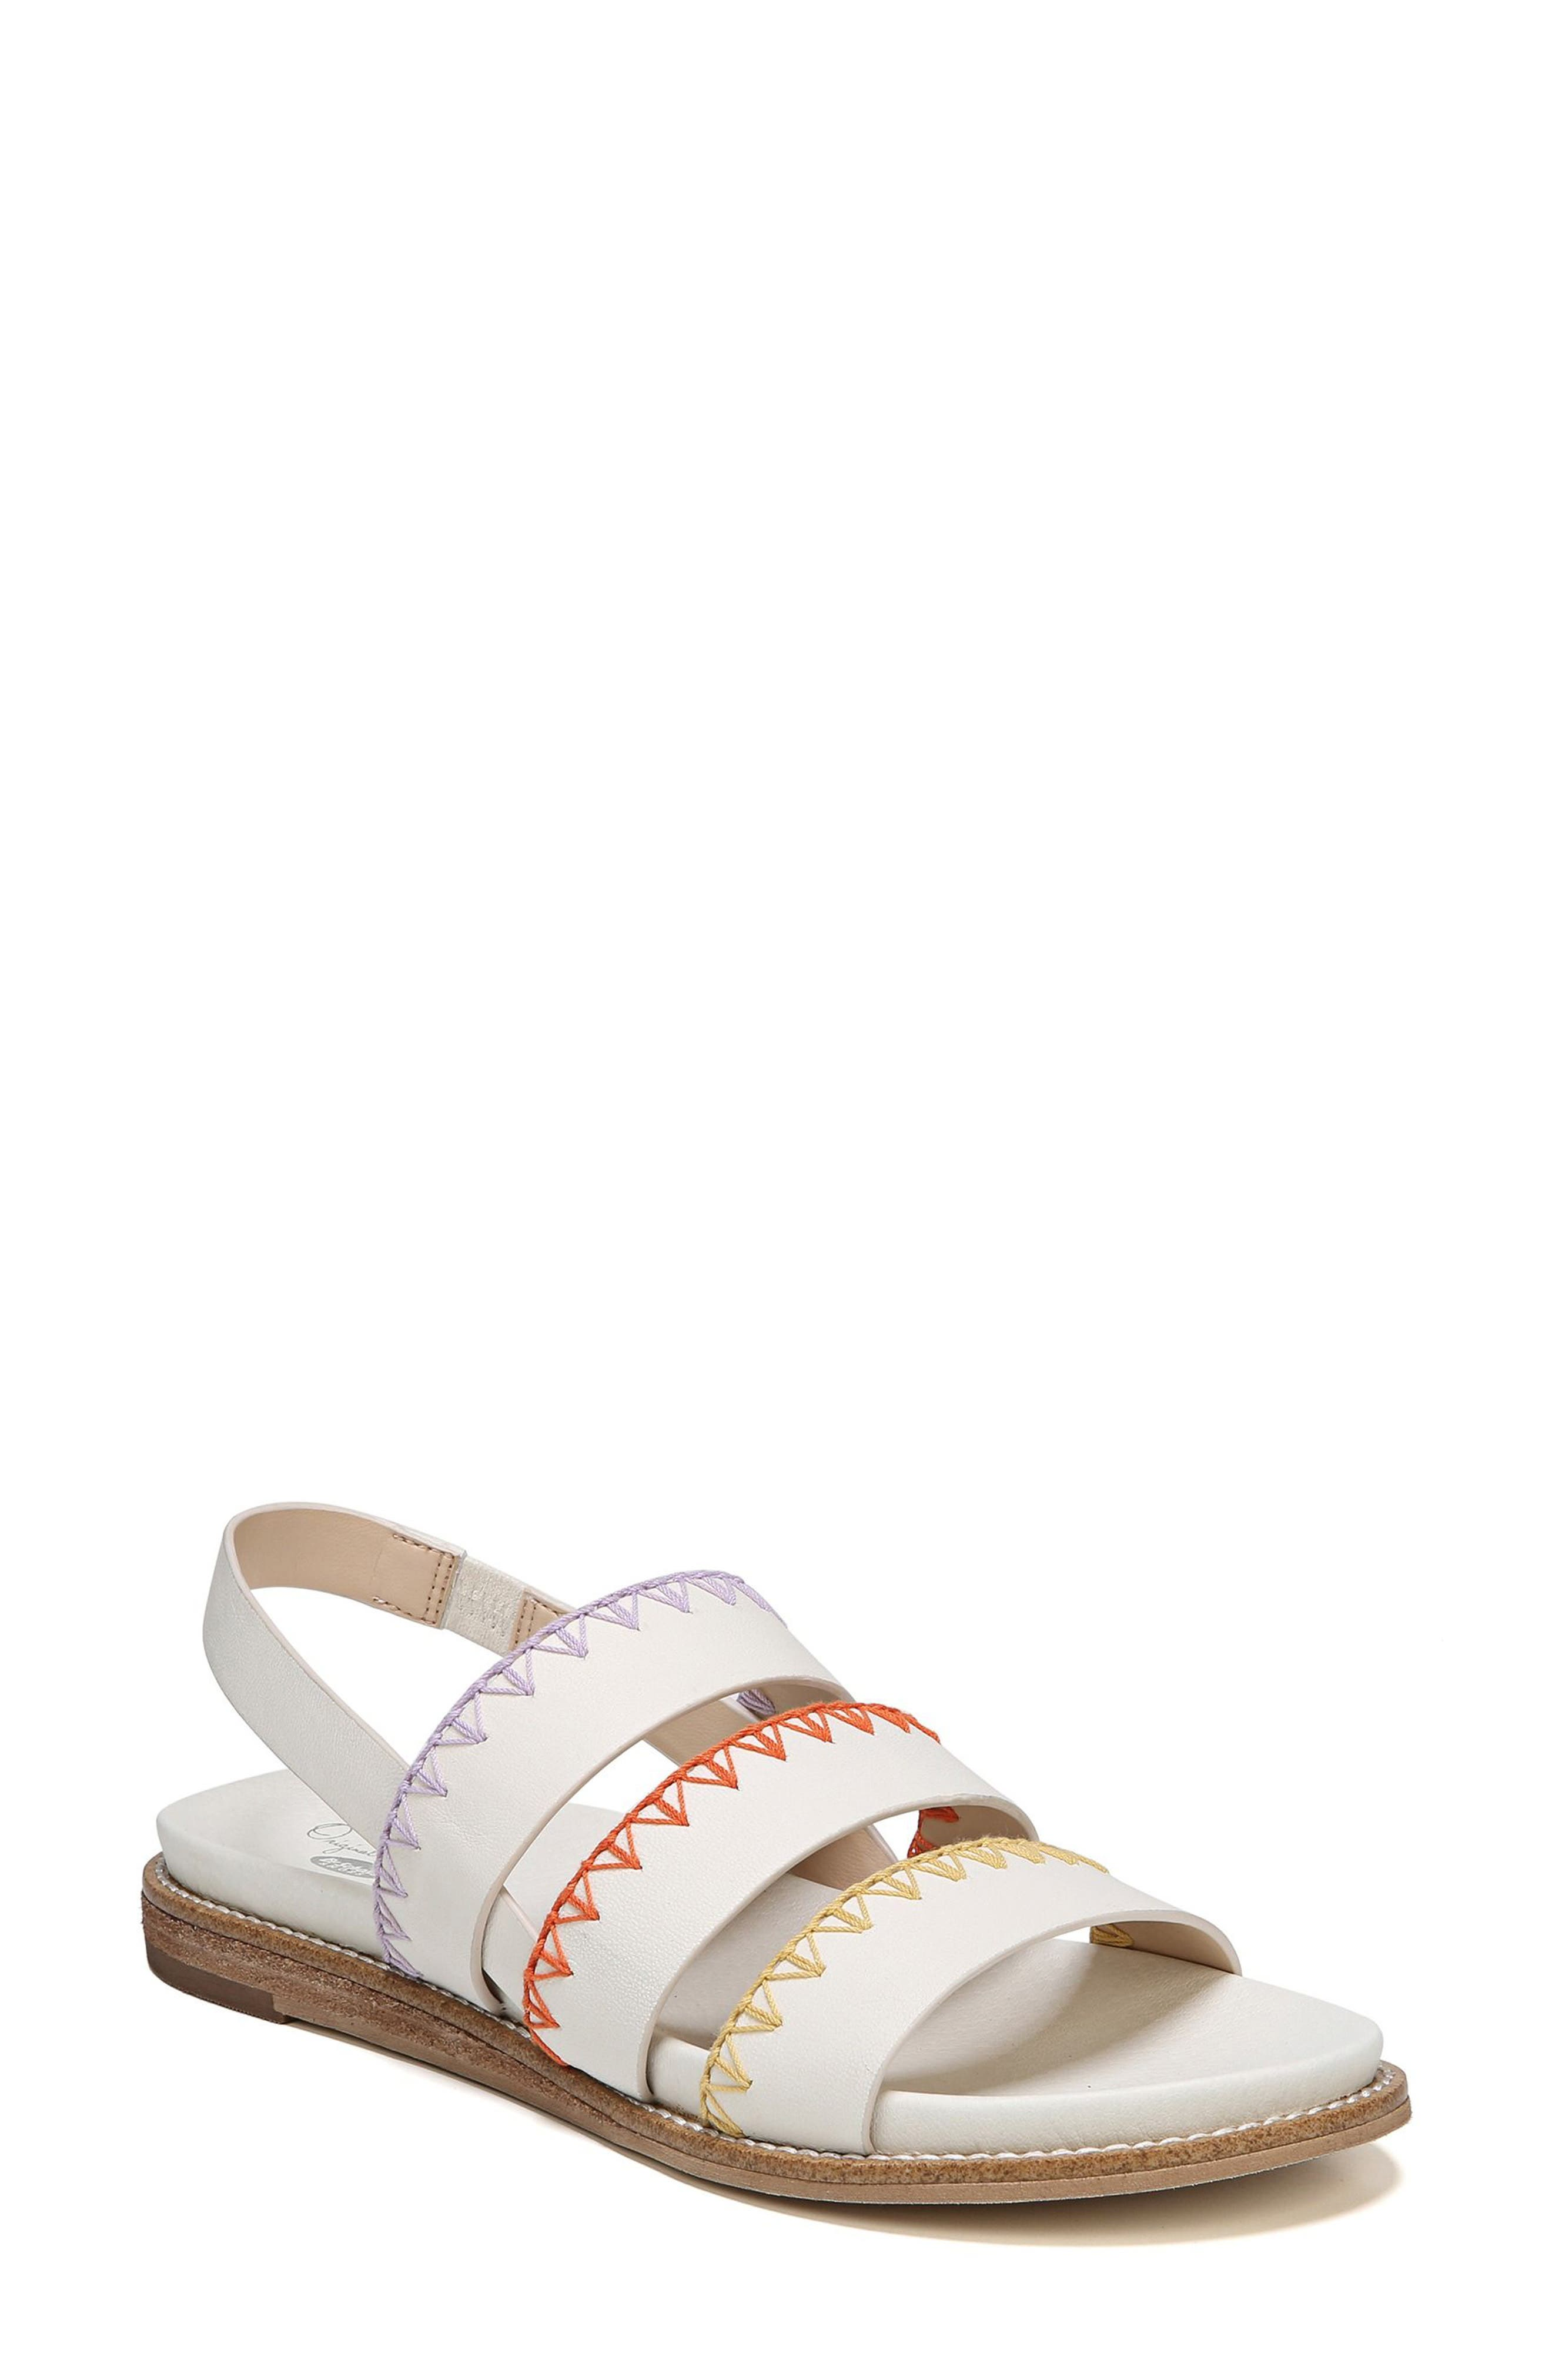 Discover Sandal,                         Main,                         color, Marshmallow Leather